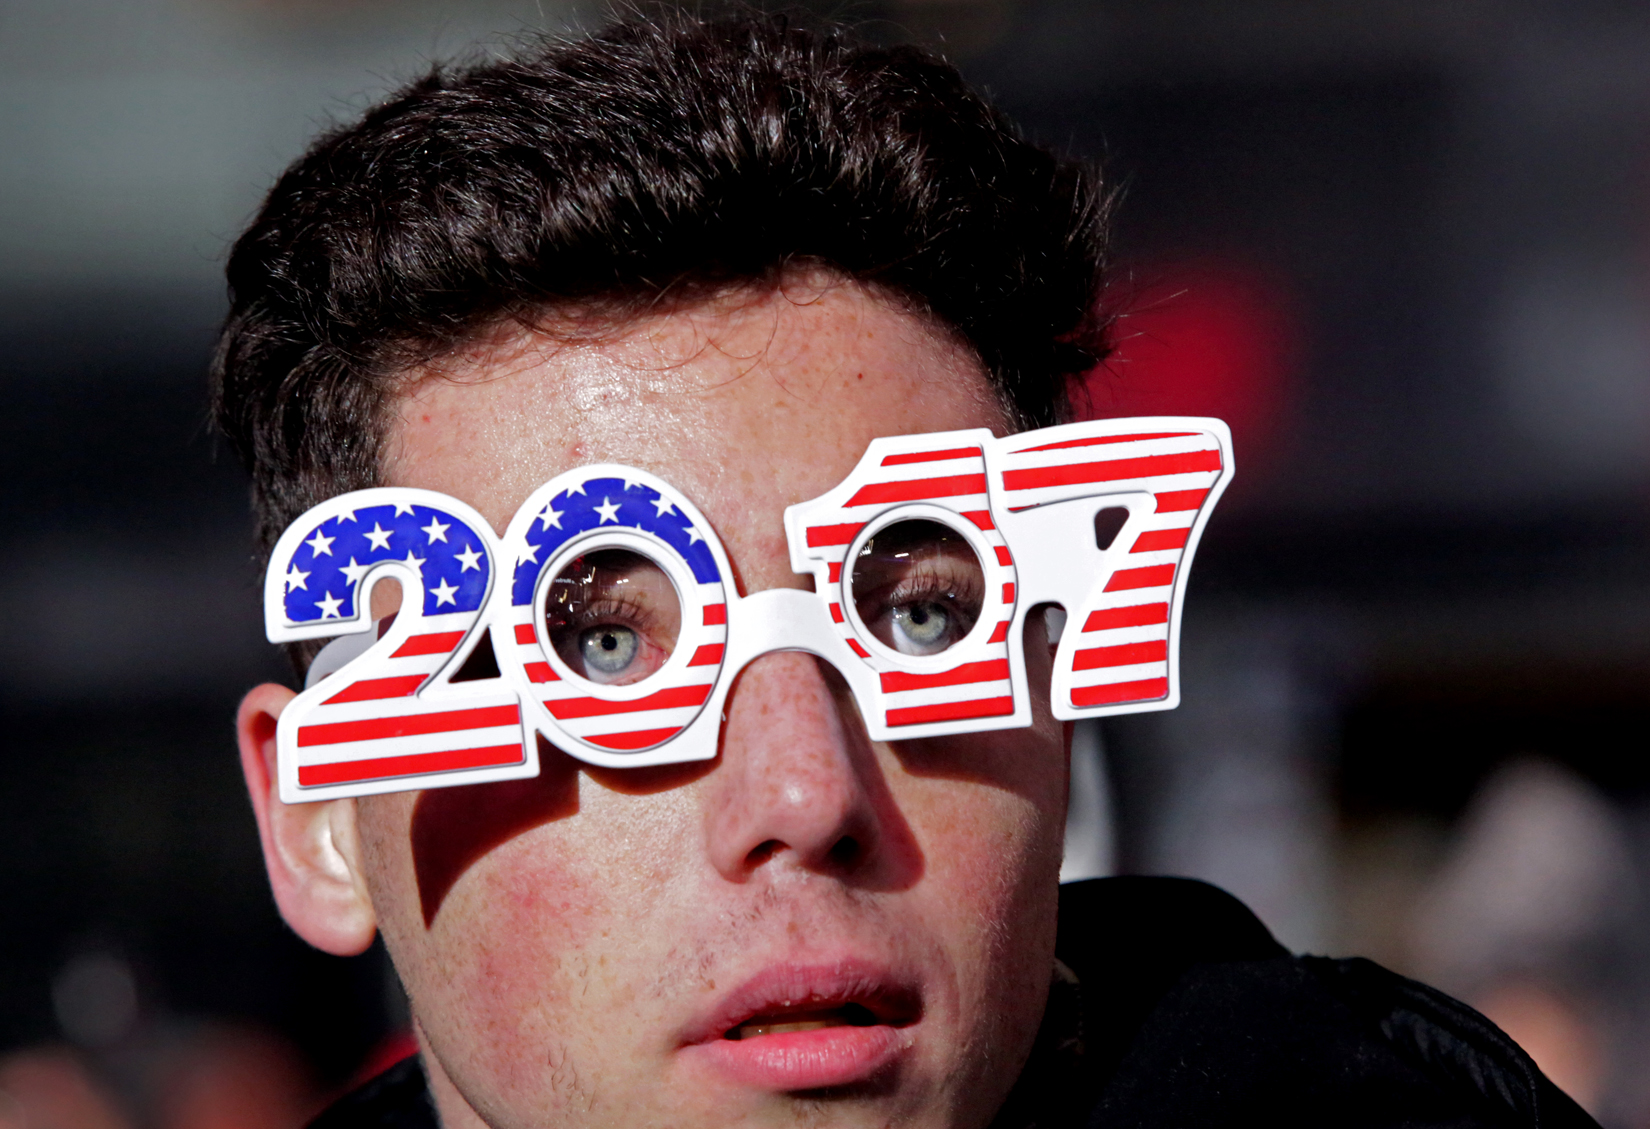 A man peers out from his glasses as people congregate in the lead-up to New Year's eve celebrations in Times Square in New York, NY on December 31, 2016.(For Getty Images)